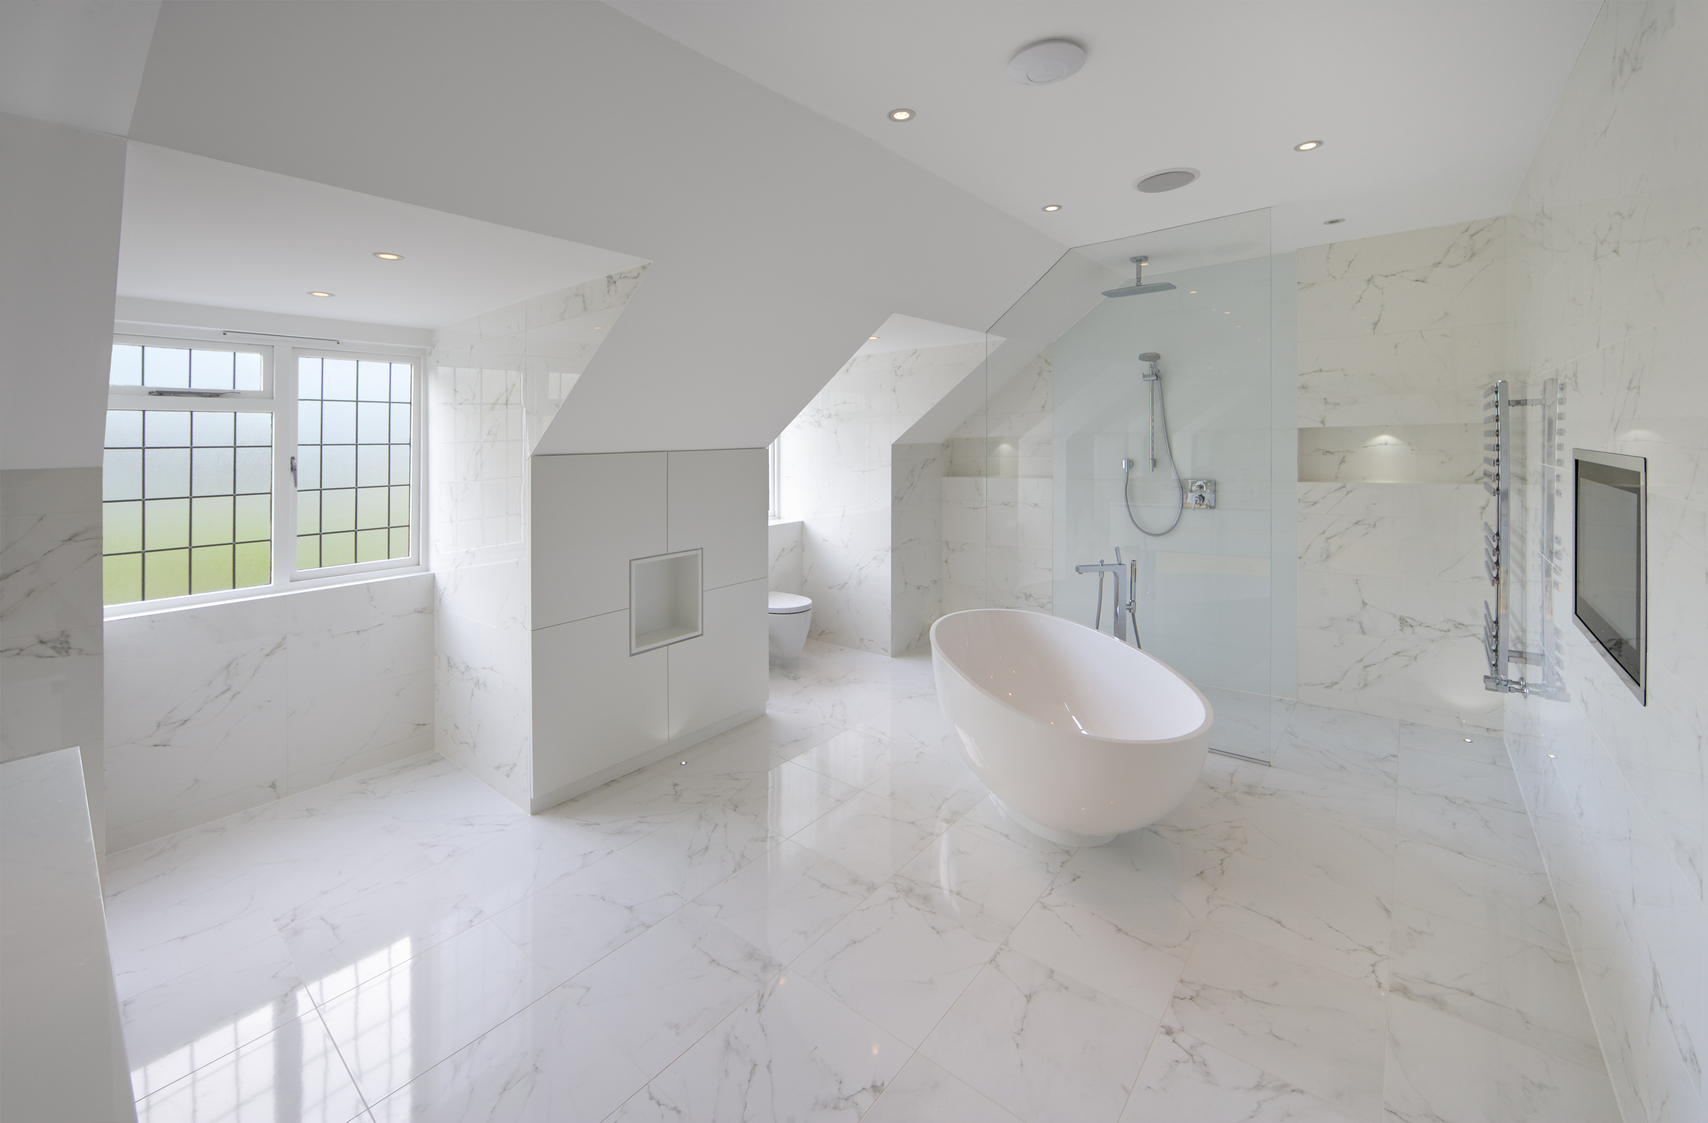 a large luxury white marble lined bathroom in an expensive home with a large oval bath. In the background is the show area behind a glass screen. A hint of green, adding a bit of colour to the scene, is visible through the frosted glass windows overlooking a garden. A large TV screen has been installed flush in the wall to the right. The square feature to the left of the bath are cupboards with a recess for decorative items in the centre. more lit recesses can be seen in the shower area.